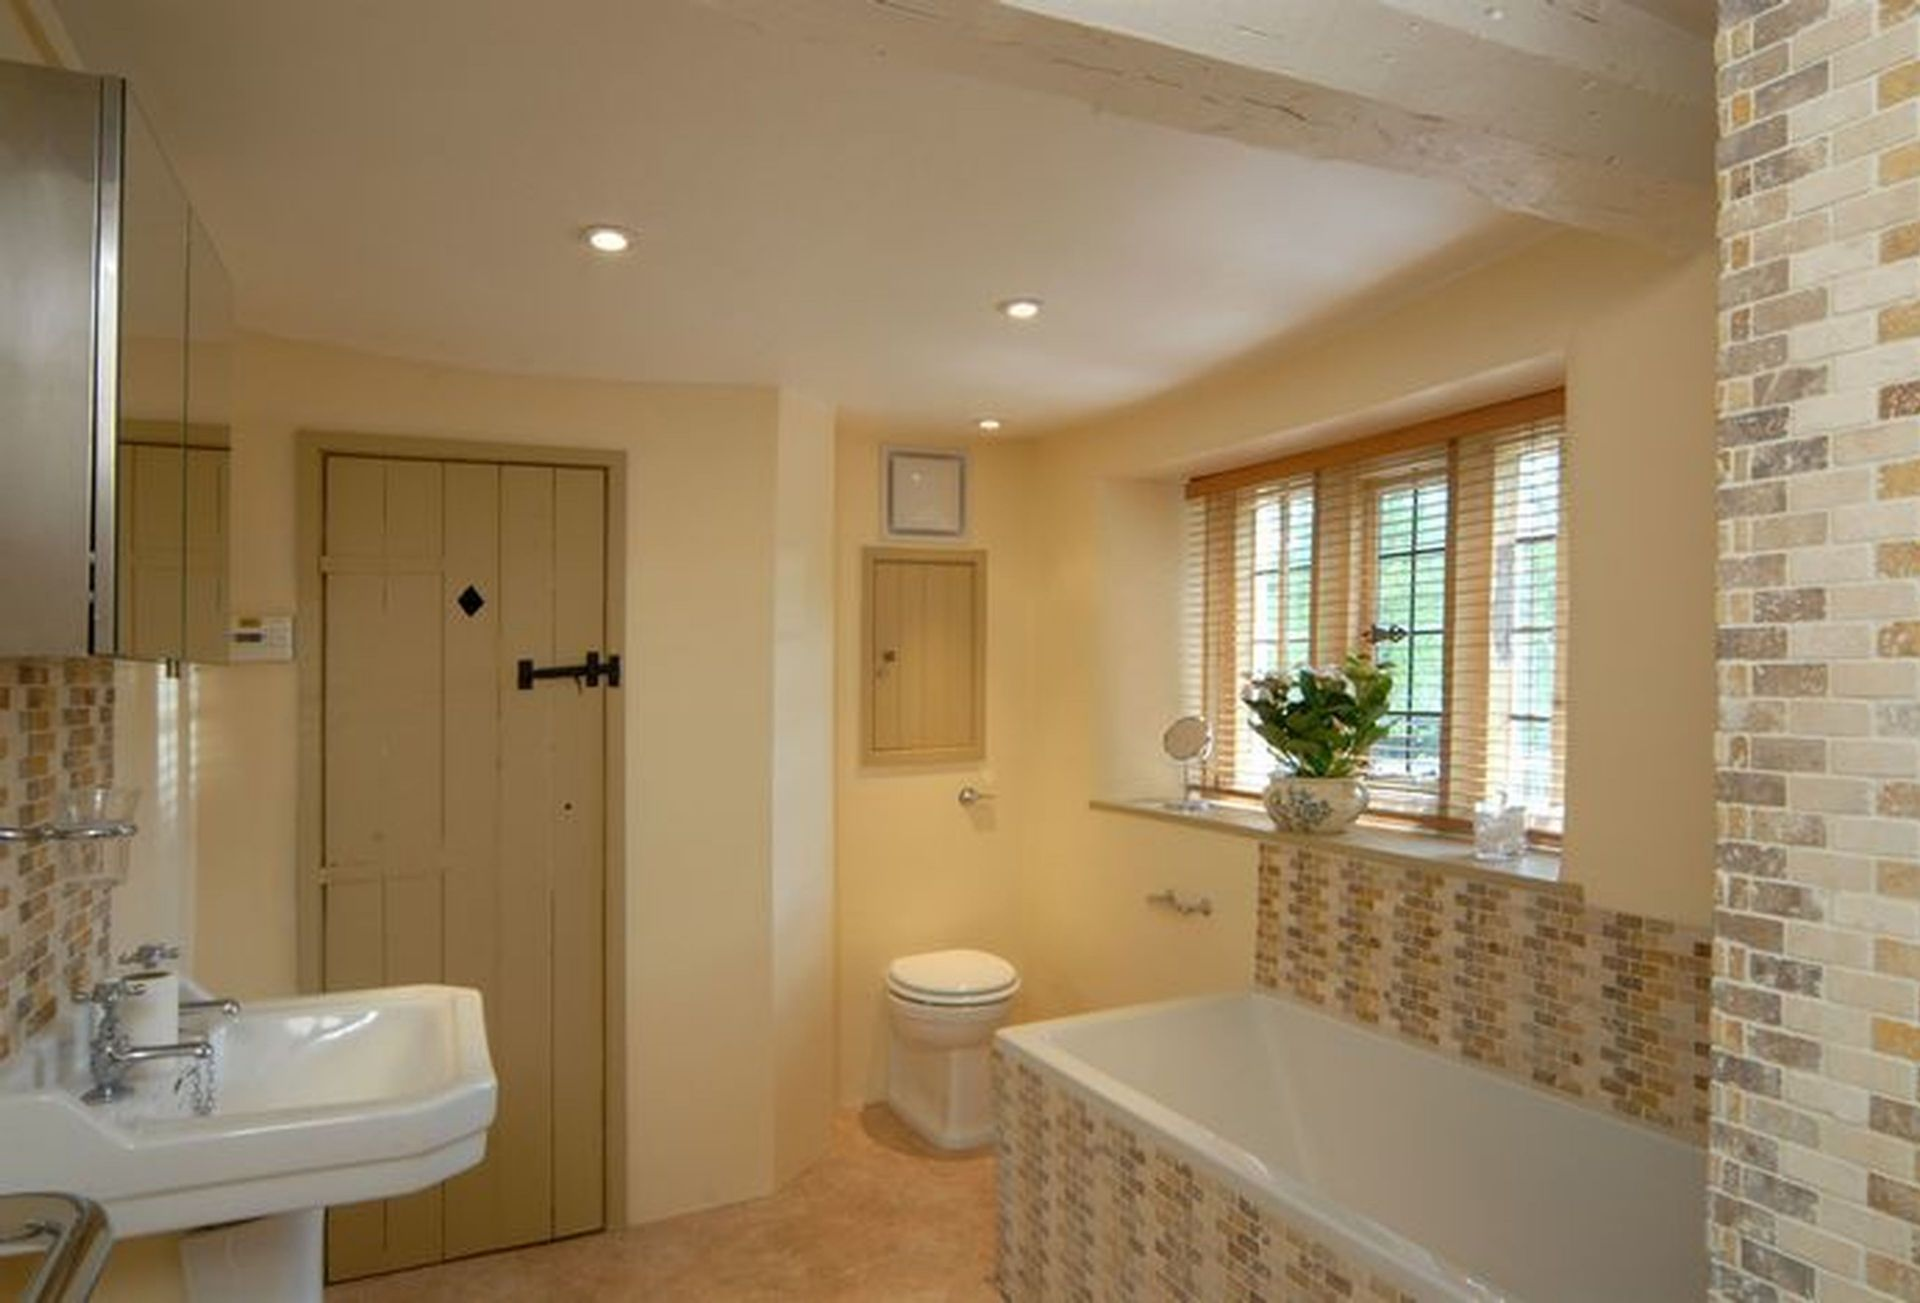 A view of the Bathroom